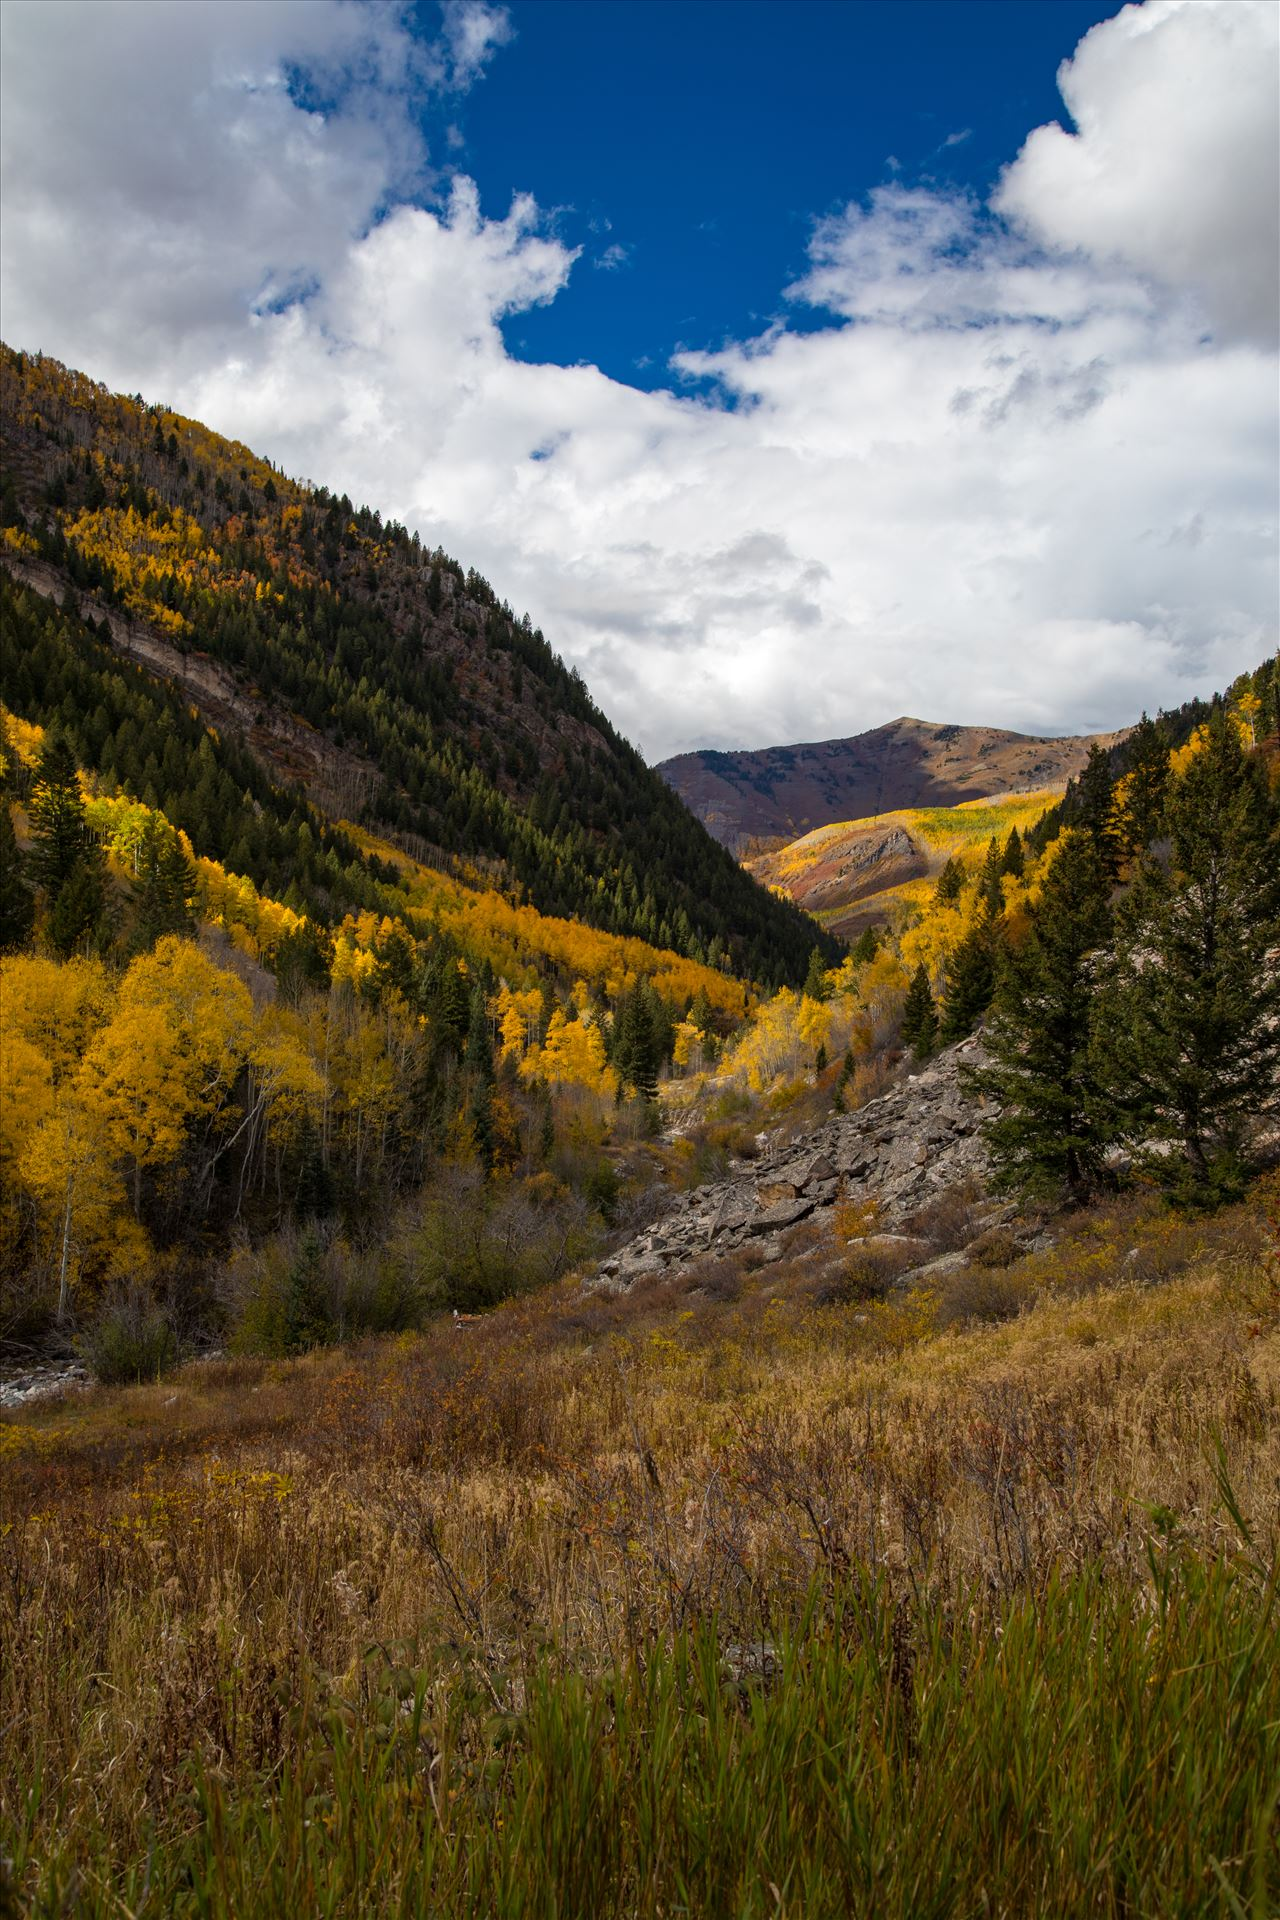 Snowmass Wilderness Area No 3 - Fall grasses and valley in the Snowmass Wilderness Area. by Scott Smith Photos